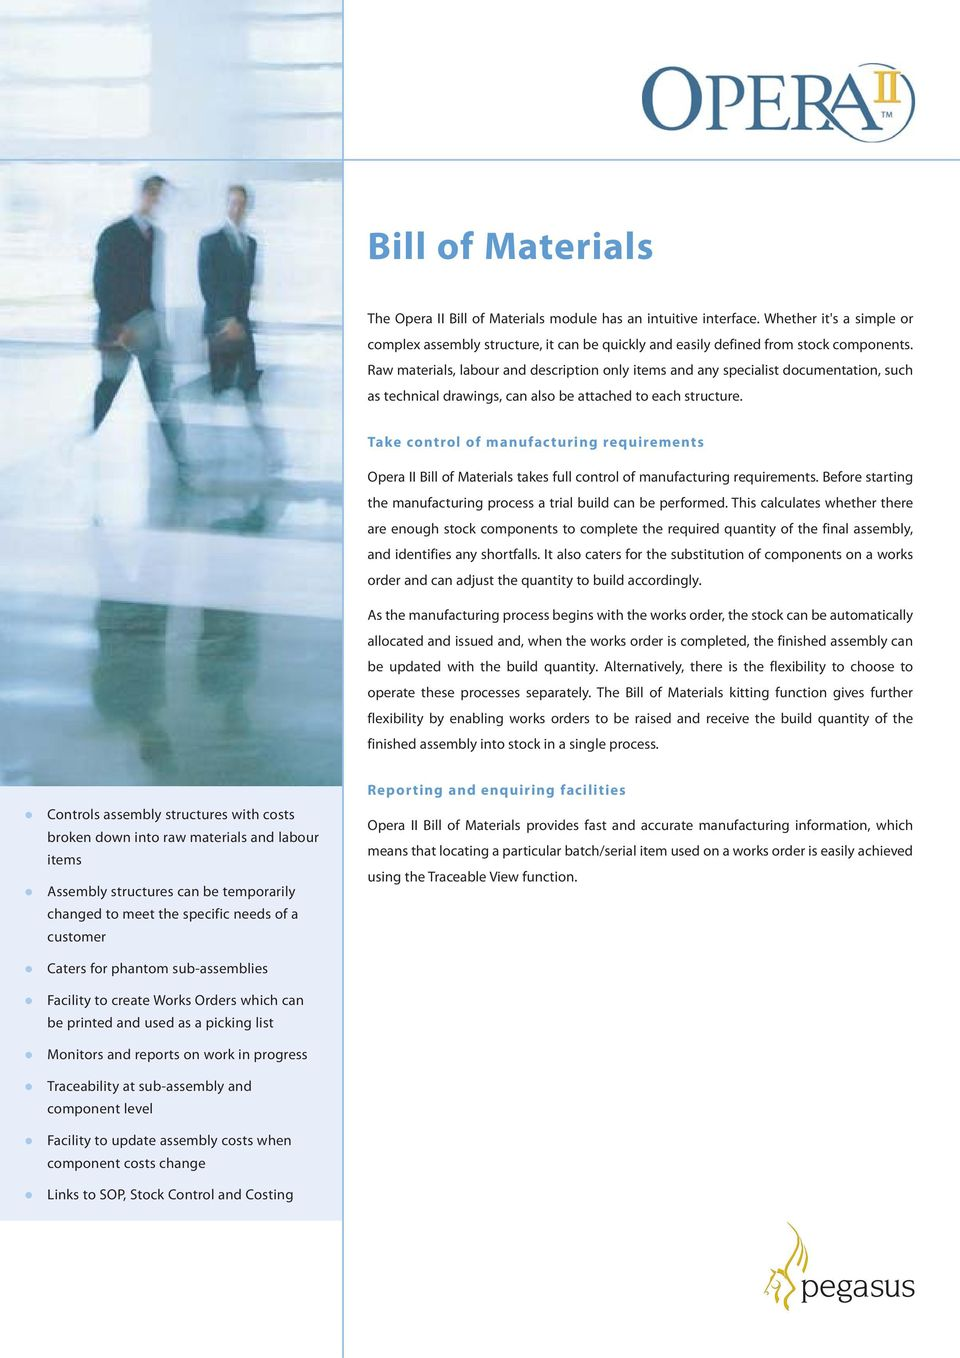 Take control of manufacturing requirements Opera II Bill of Materials takes full control of manufacturing requirements. Before starting the manufacturing process a trial build can be performed.